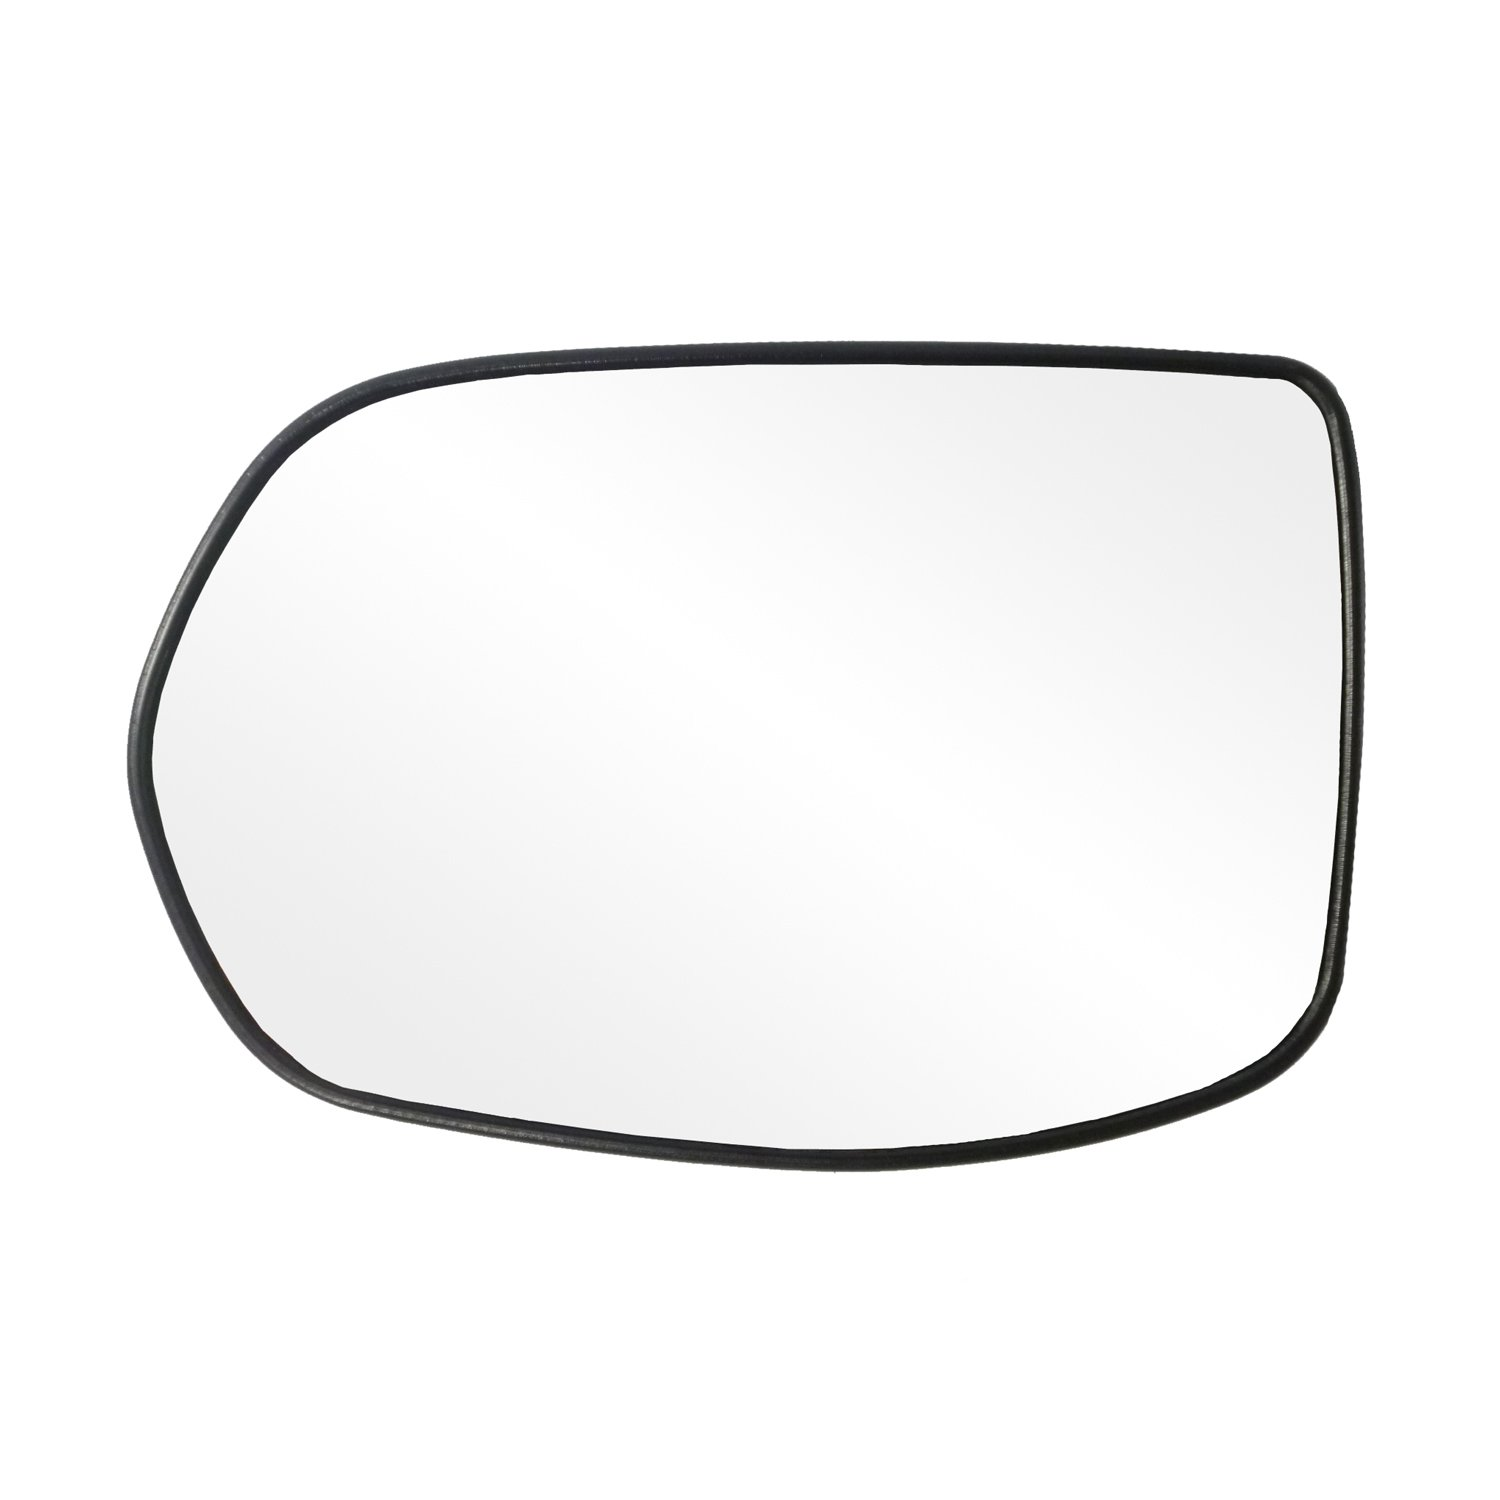 Fit System 88217 Honda CR-V Left Side Power Replacement Mirror Glass with Backing Plate